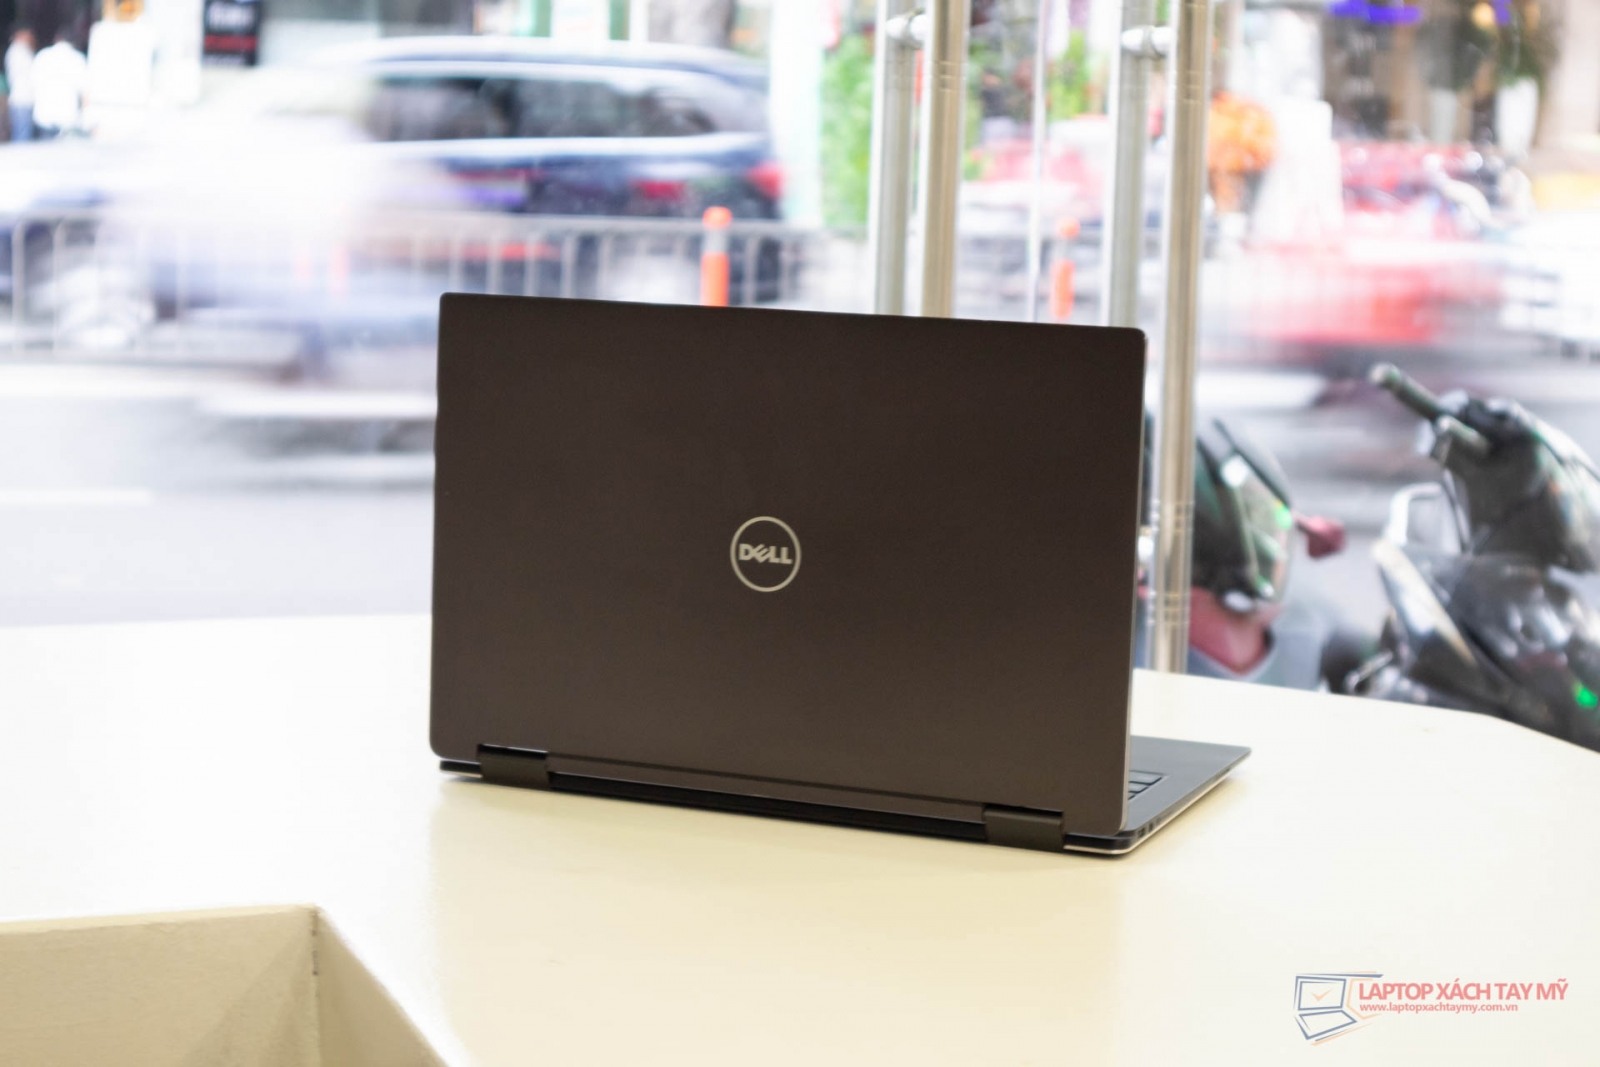 dell xps 9365 laptop cao cap doanh nhanh sieu mong nhe man cam ung laptop cu gia re